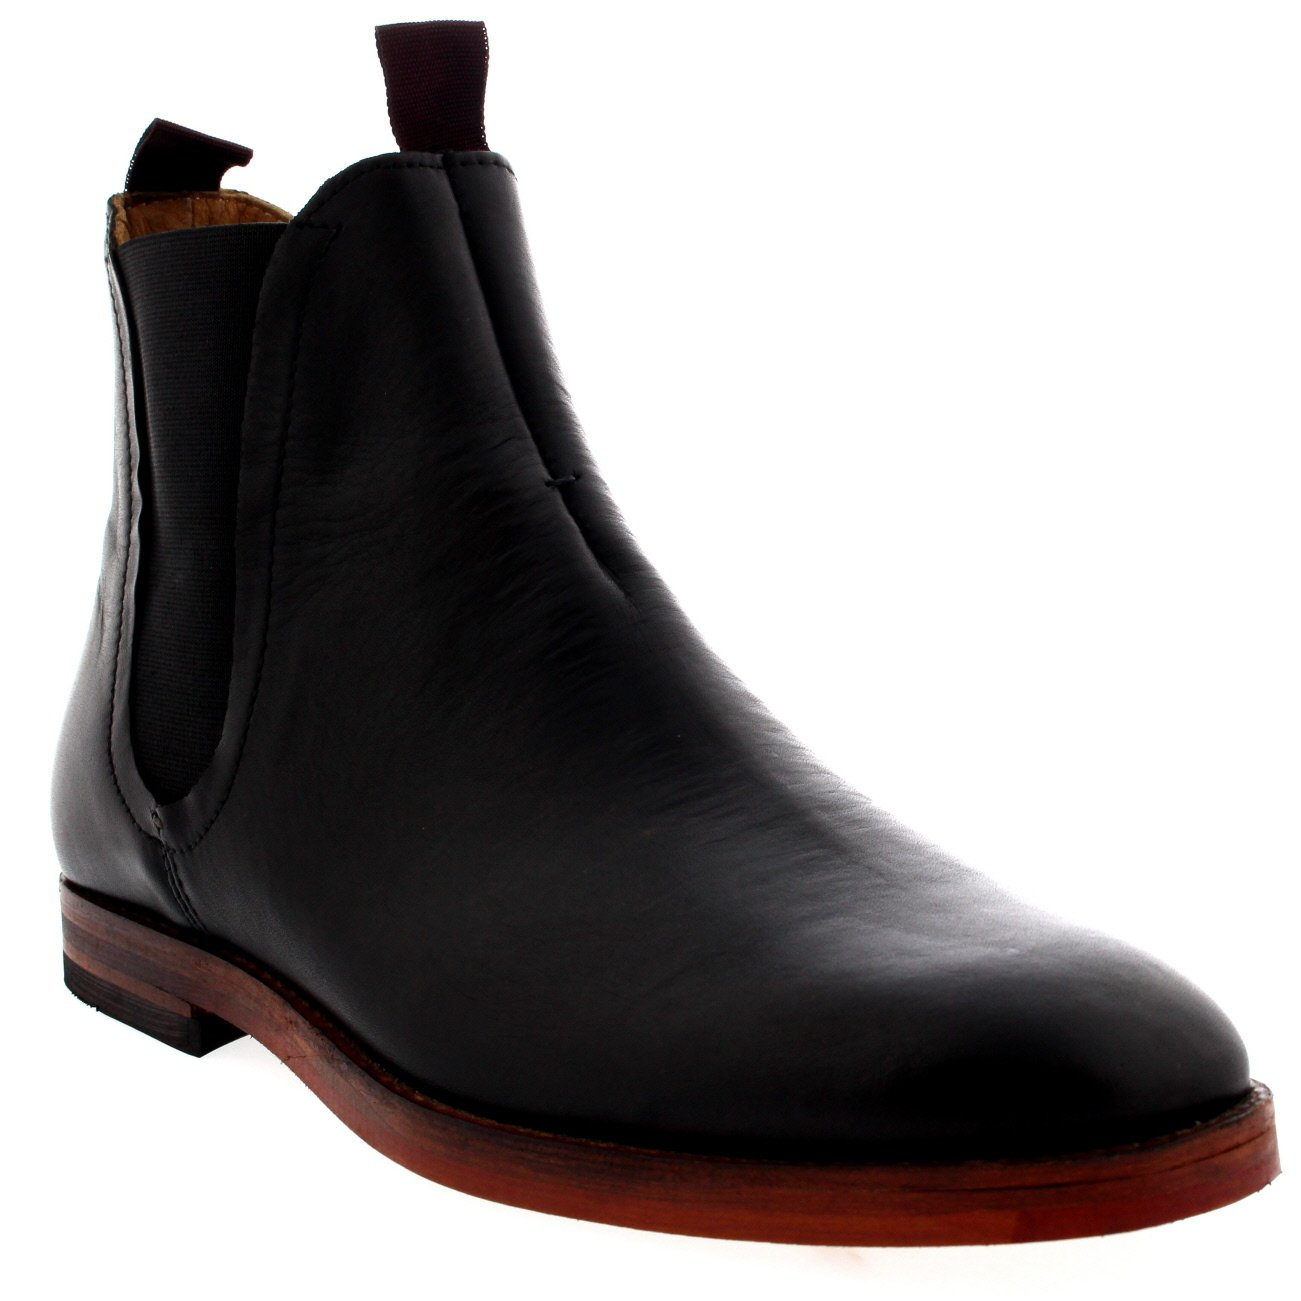 H by Hudson Men's Tamper Chelsea Boot, Black, 43 EU/10 M US